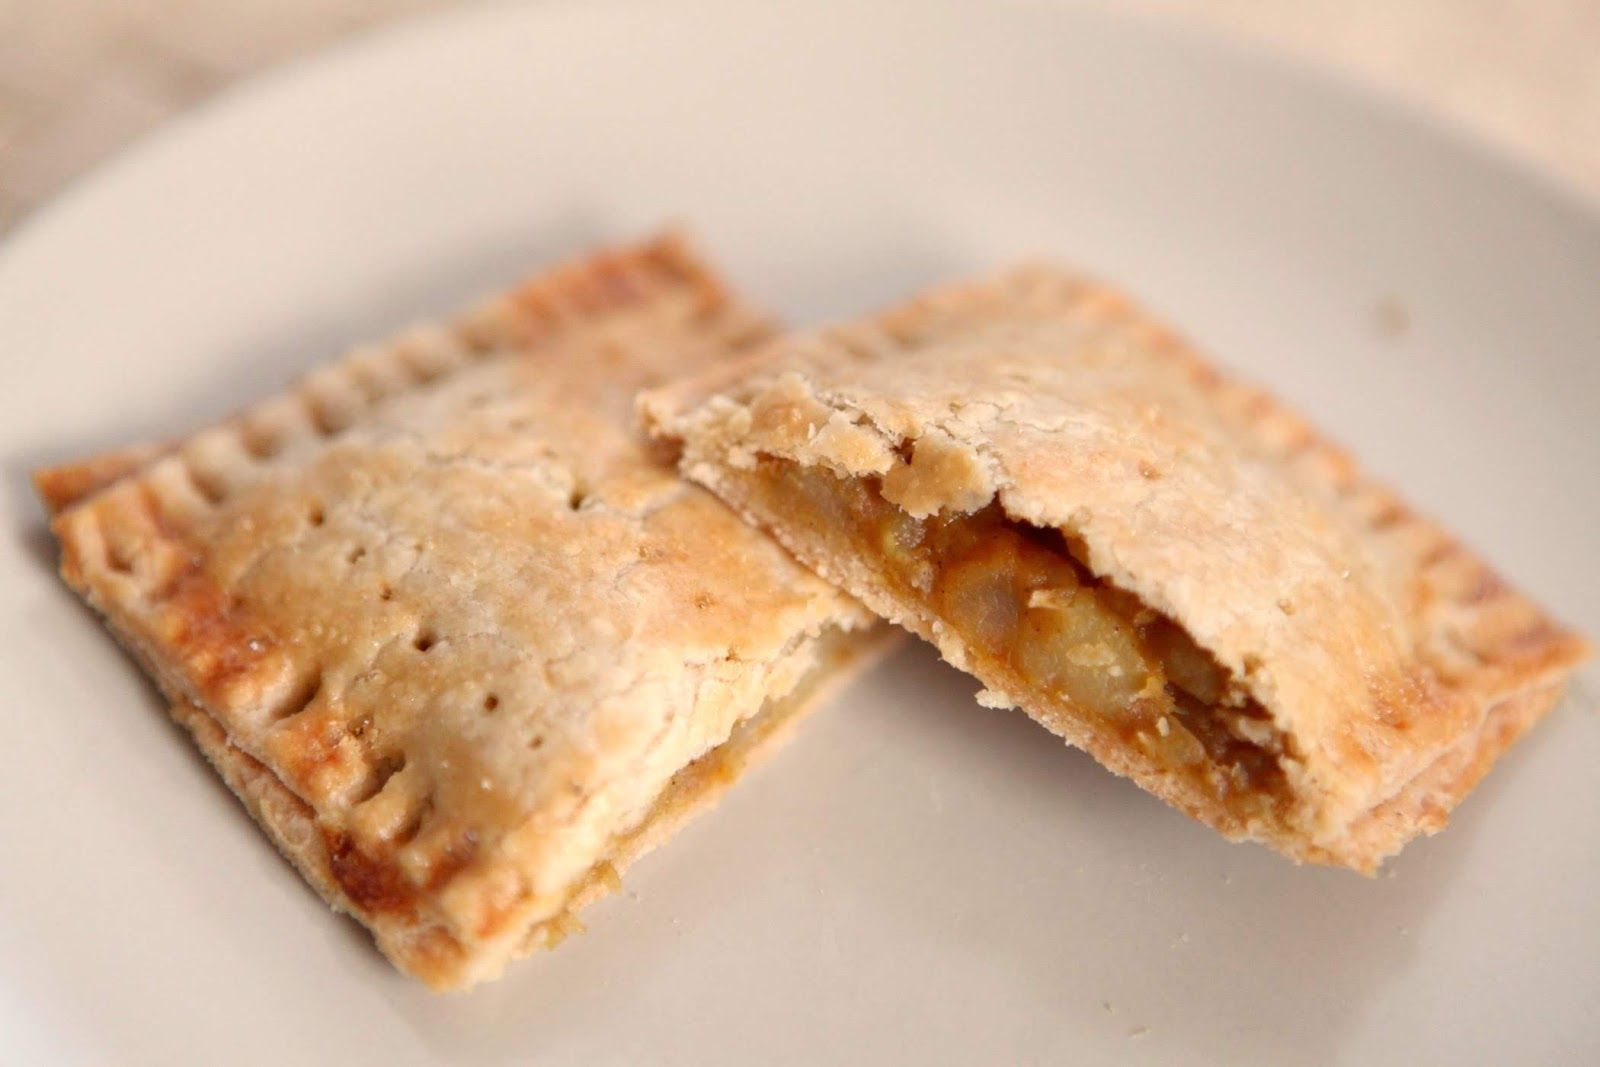 Homemade pop tarts with curried onion and potato filling.